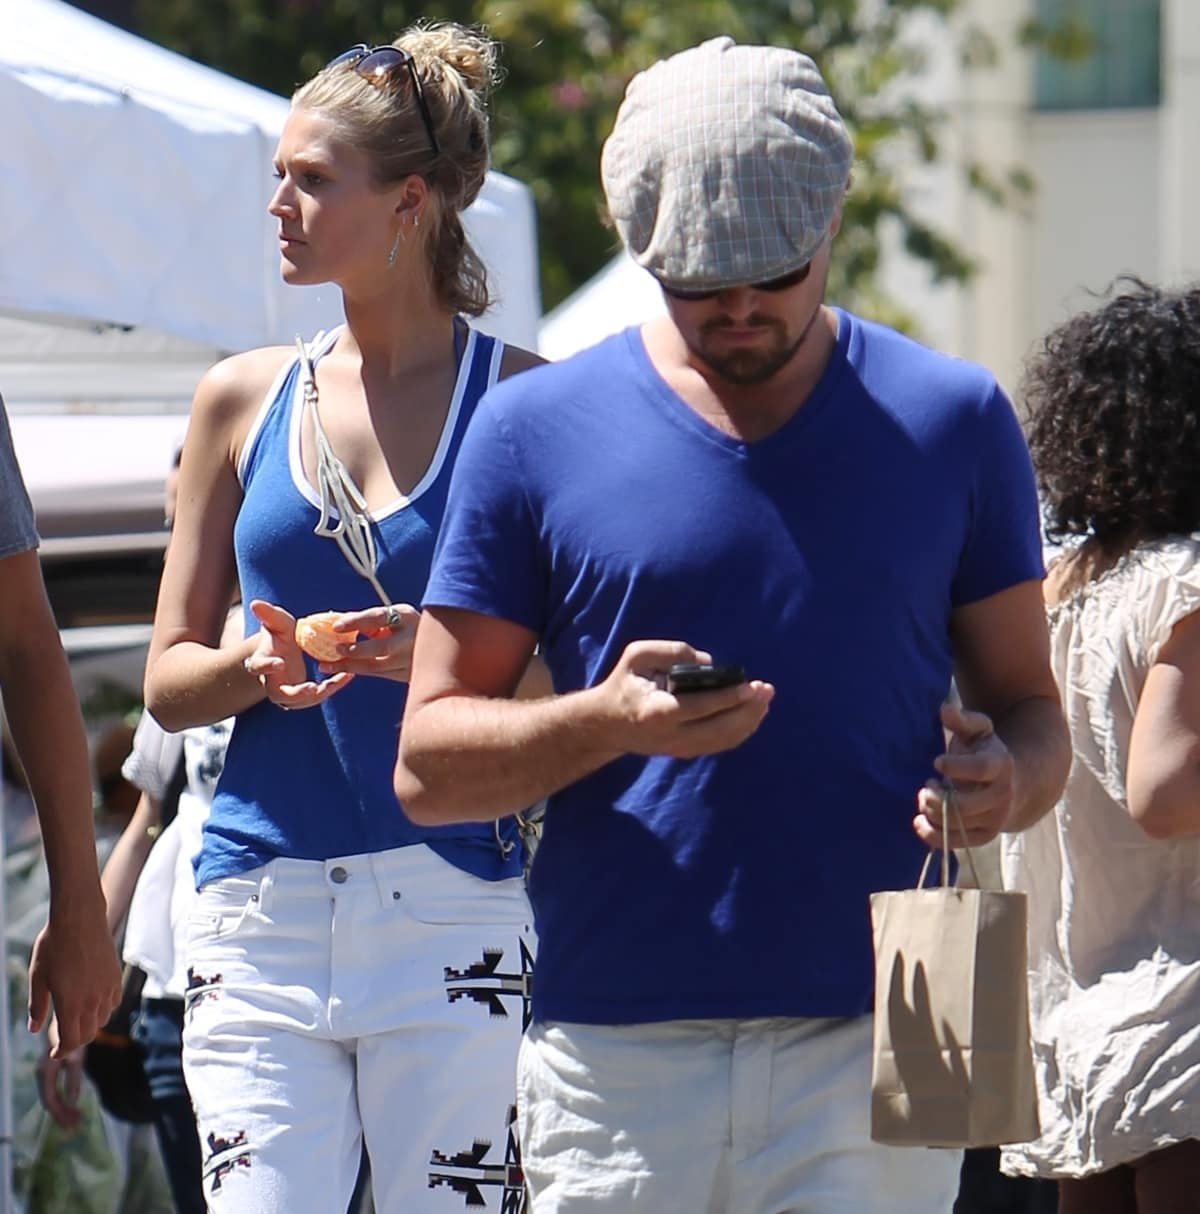 Leonardo DiCaprio and Toni Garrn split in late 2014 after privately dating since May 2013